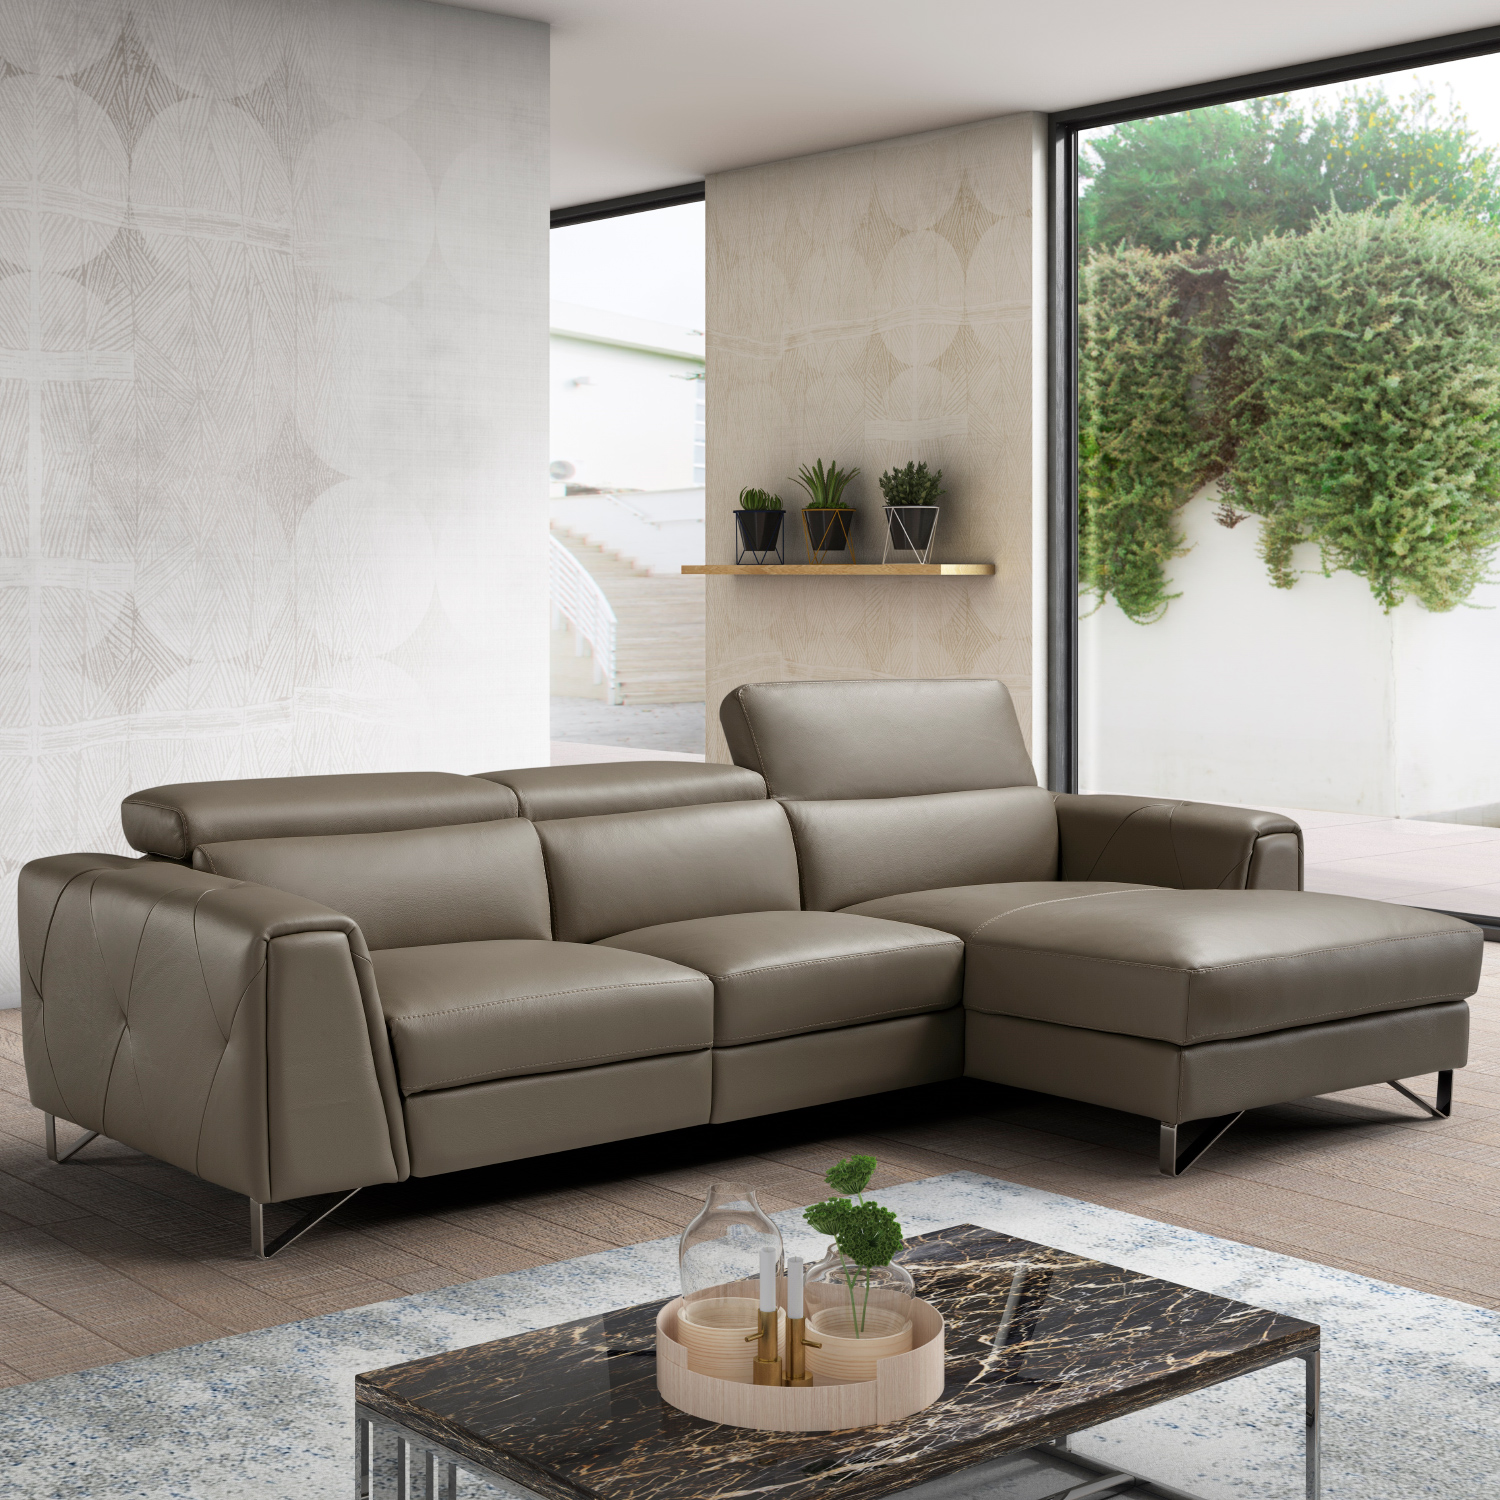 Fabulous Magic Reclining Sectional Sofa W Right Facing Chaise In Taupe Italian Leather By J And M Furniture Short Links Chair Design For Home Short Linksinfo